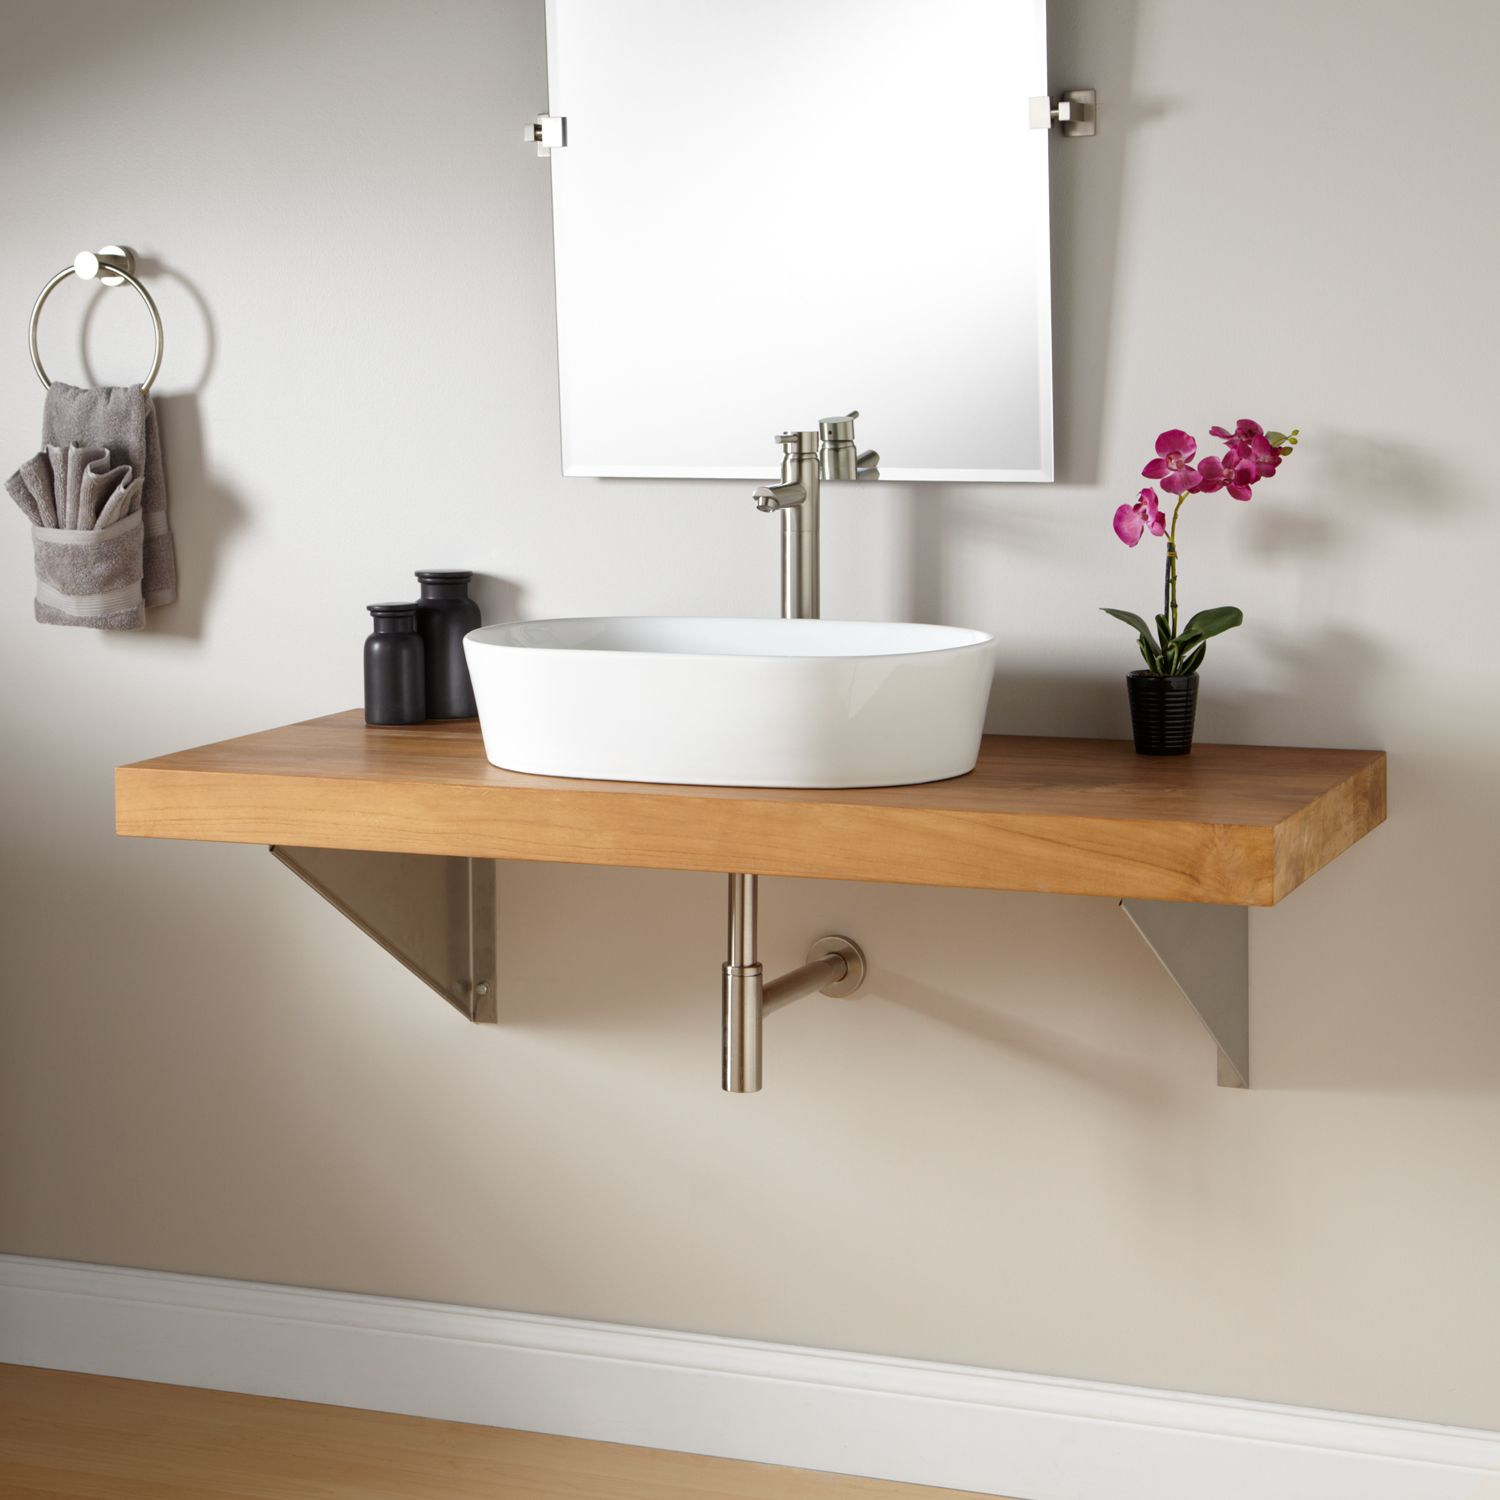 small sink vanity for small bathrooms%0A Teak Wall Mount Vanity for Vessel Sink  Triangular Brackets